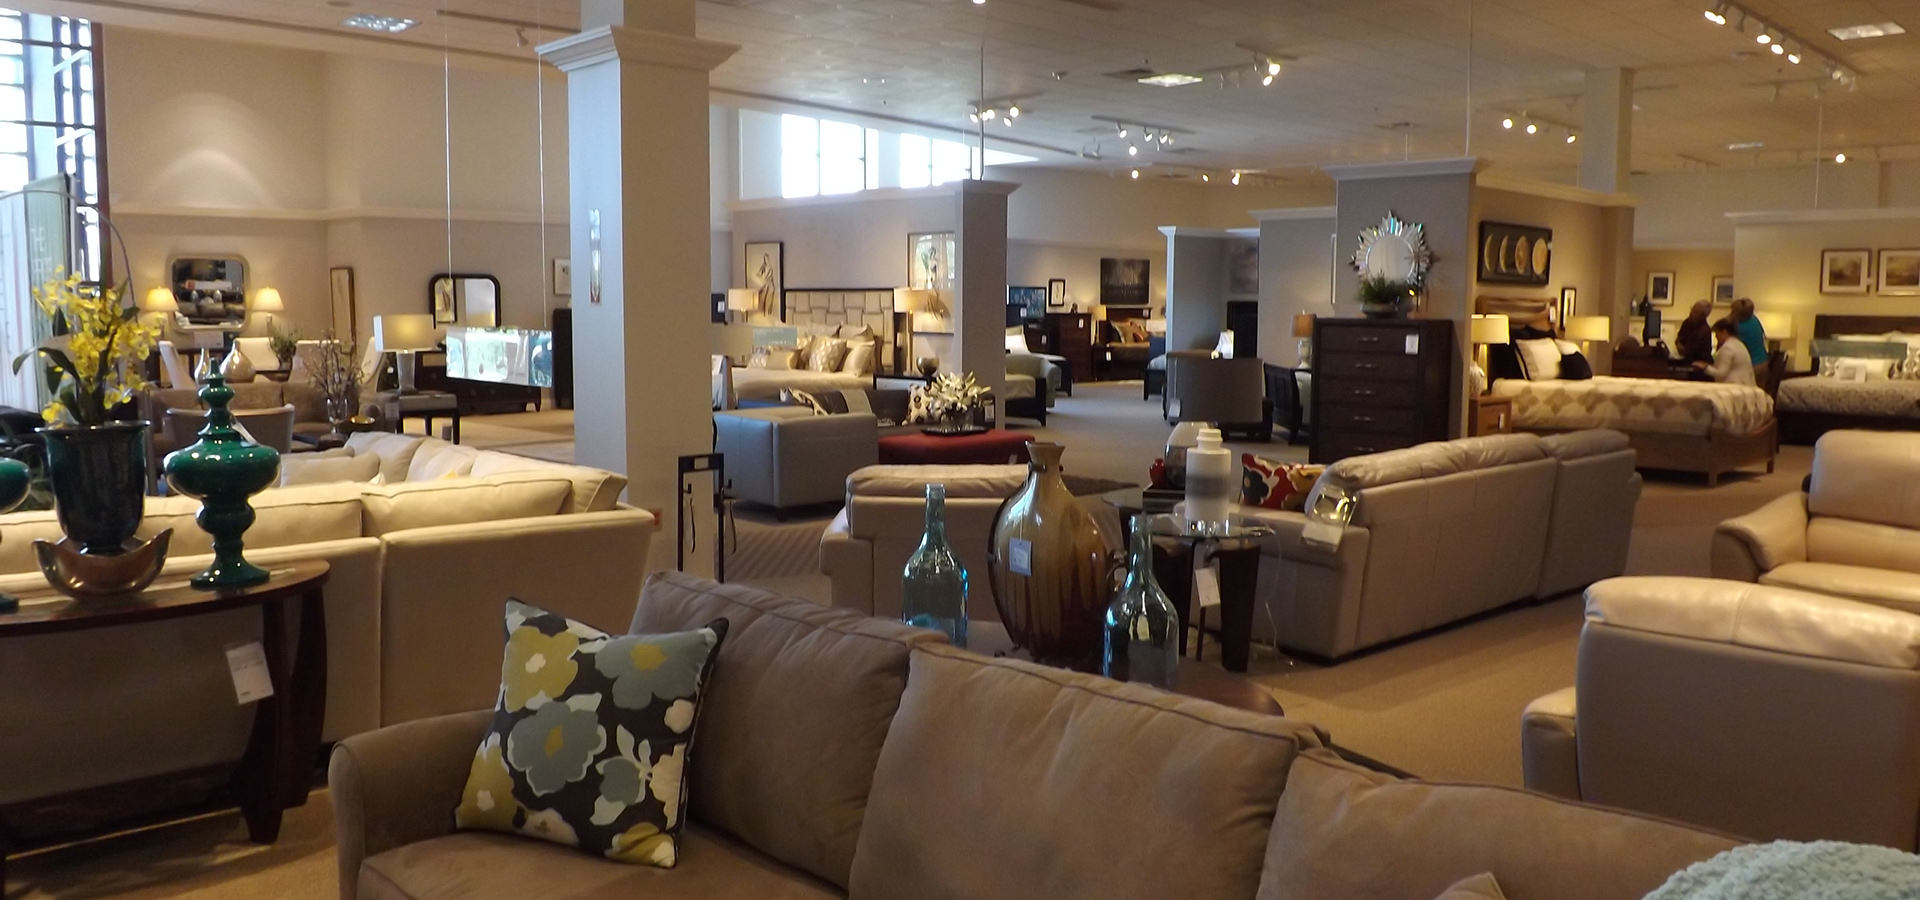 Haverty\'s Furniture in Dulles, VA | Dulles Town Center